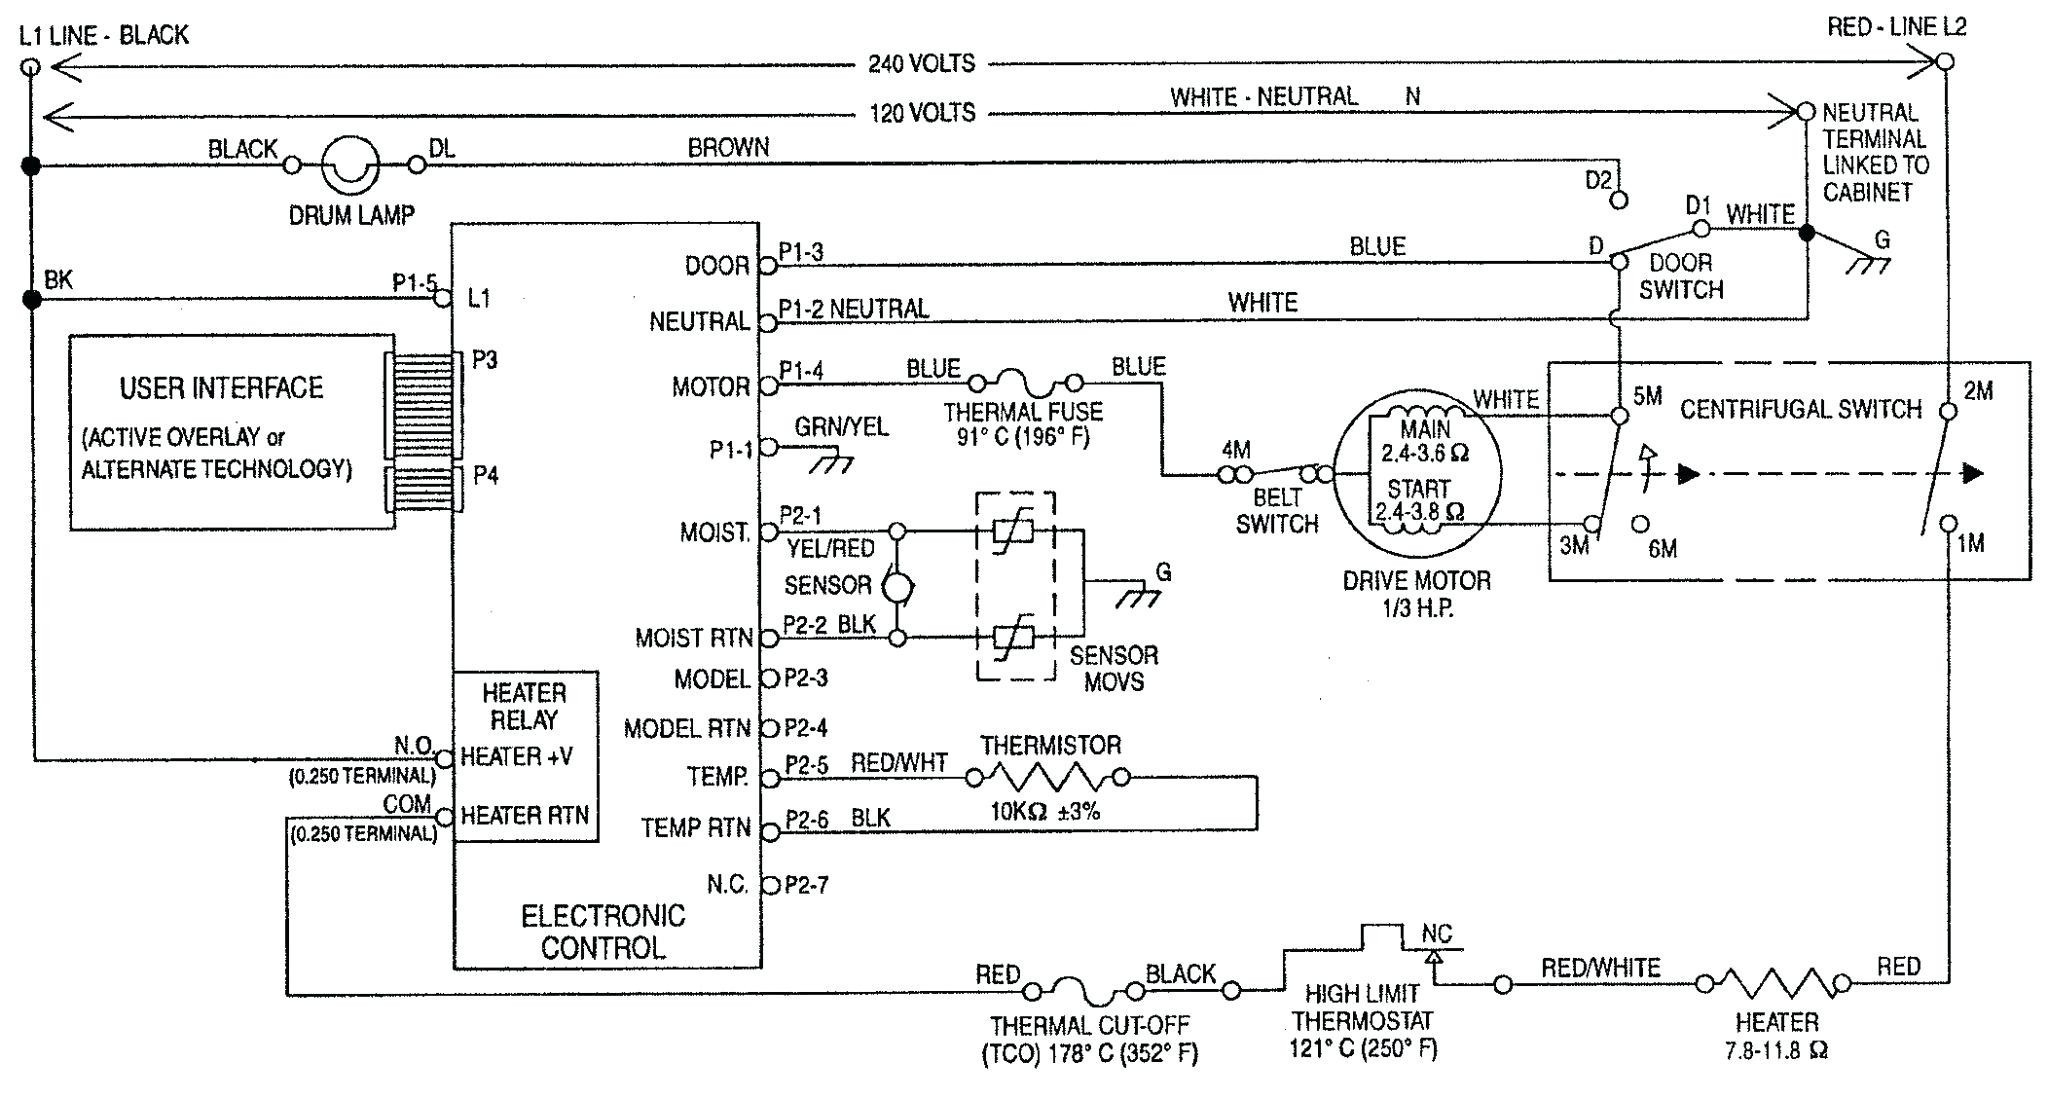 ge dryer timer wiring diagram Download-Wiring Diagram for Ge Dryer Motor Valid Ge Dryer Start Switch Wiring Diagram Best Wiring Diagram 1-d